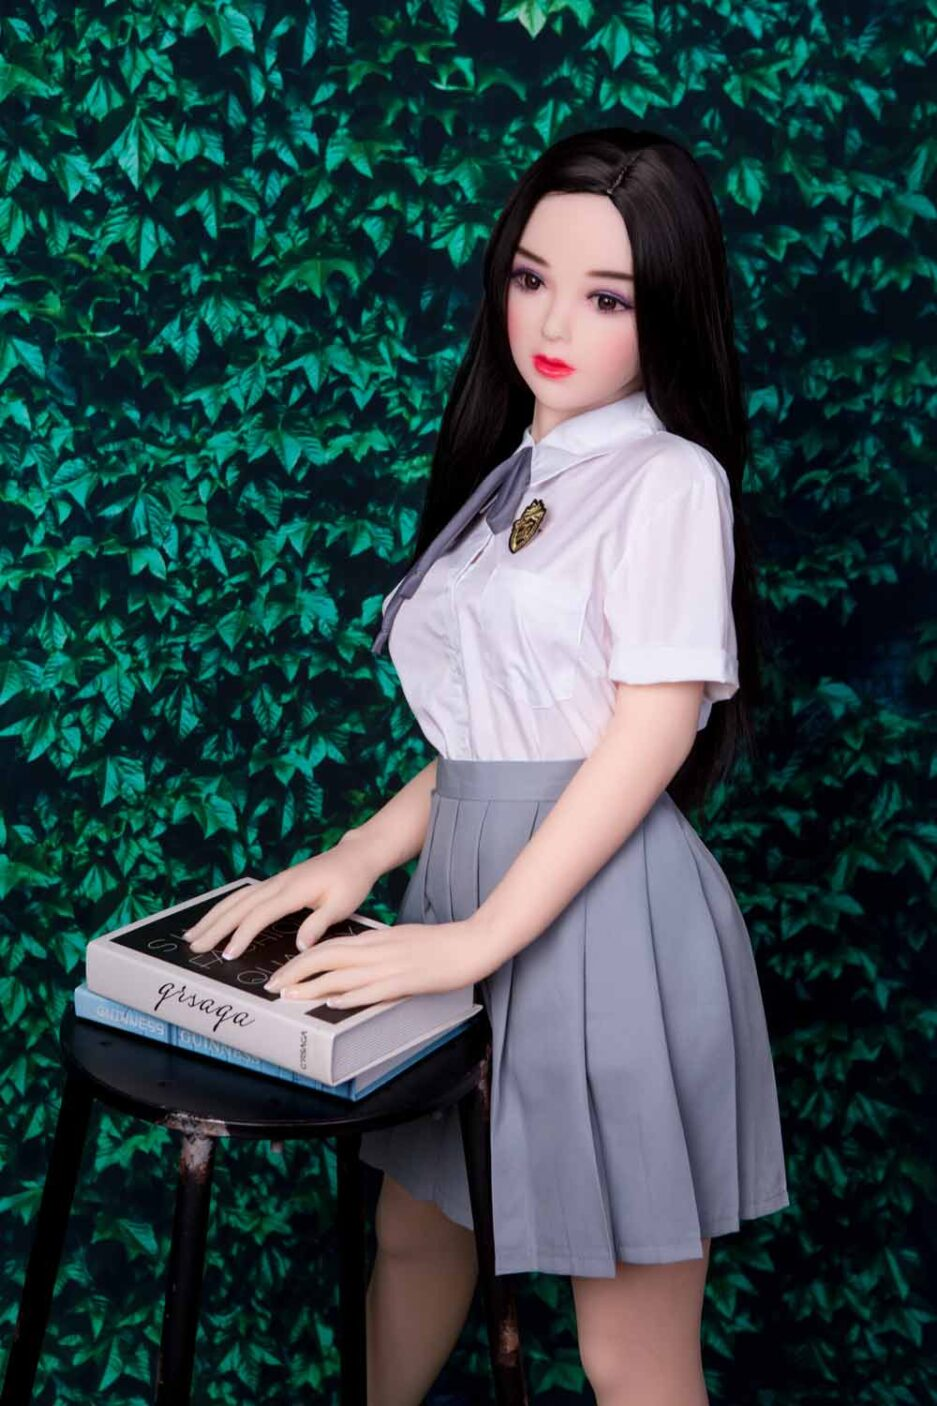 Mini sex doll with a book on a stool